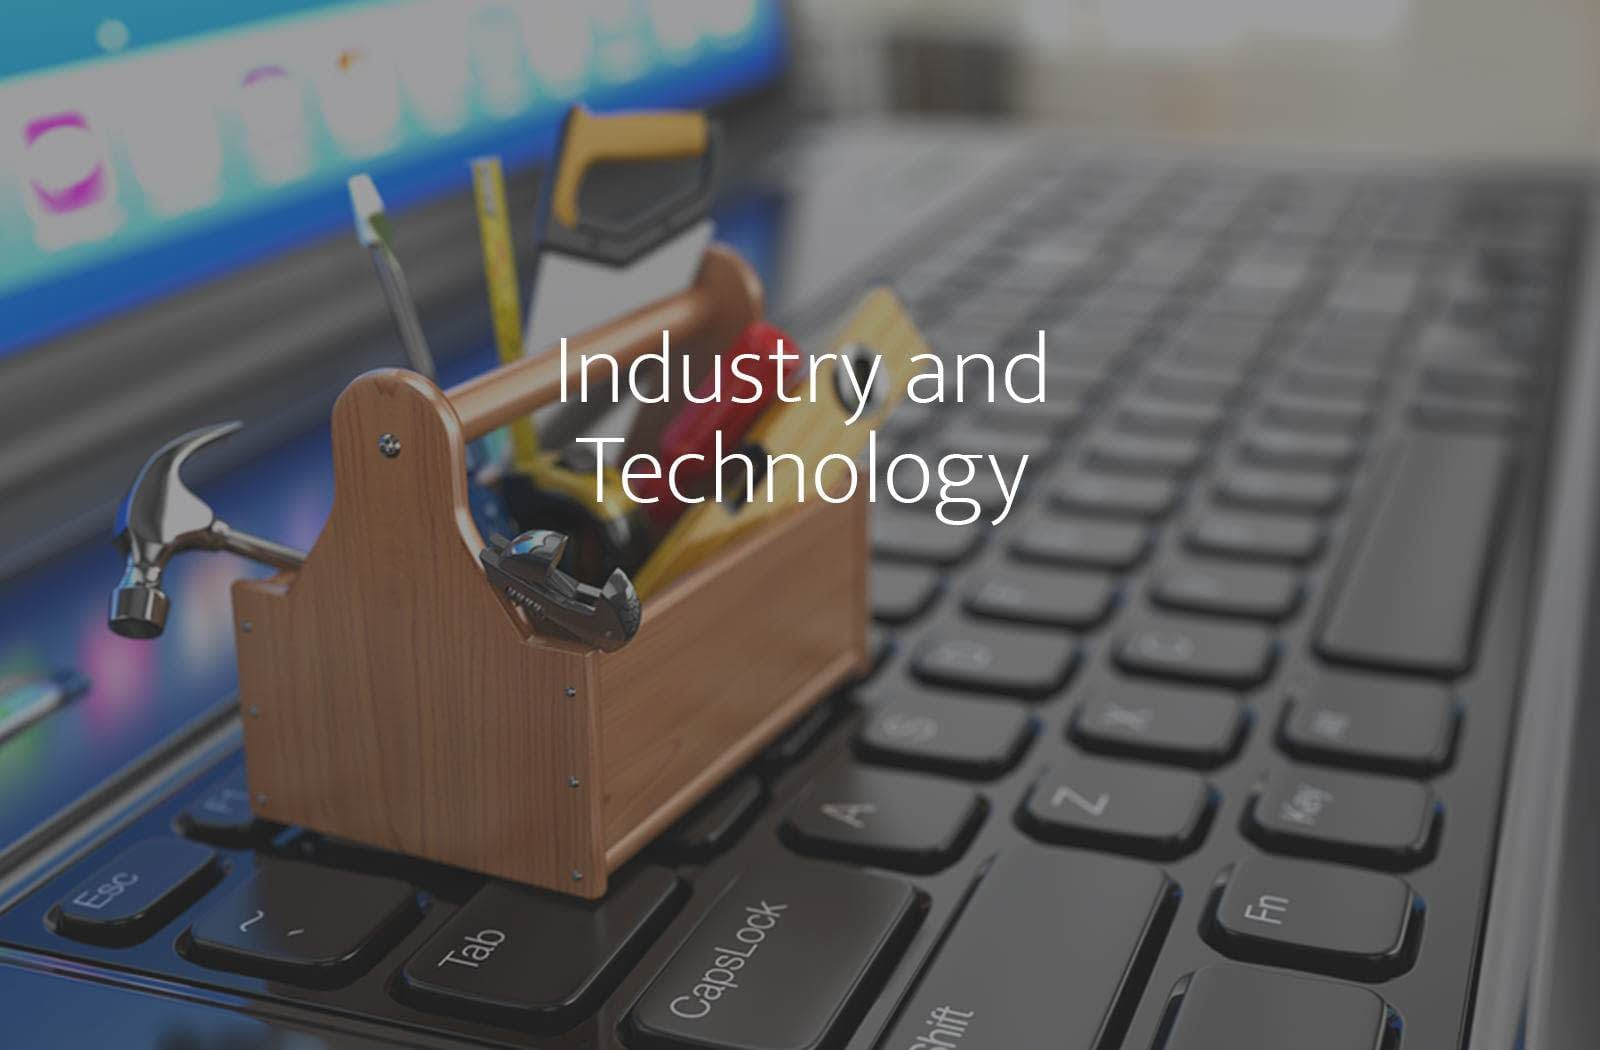 Recruitment, assessment and development for Industry and Technology